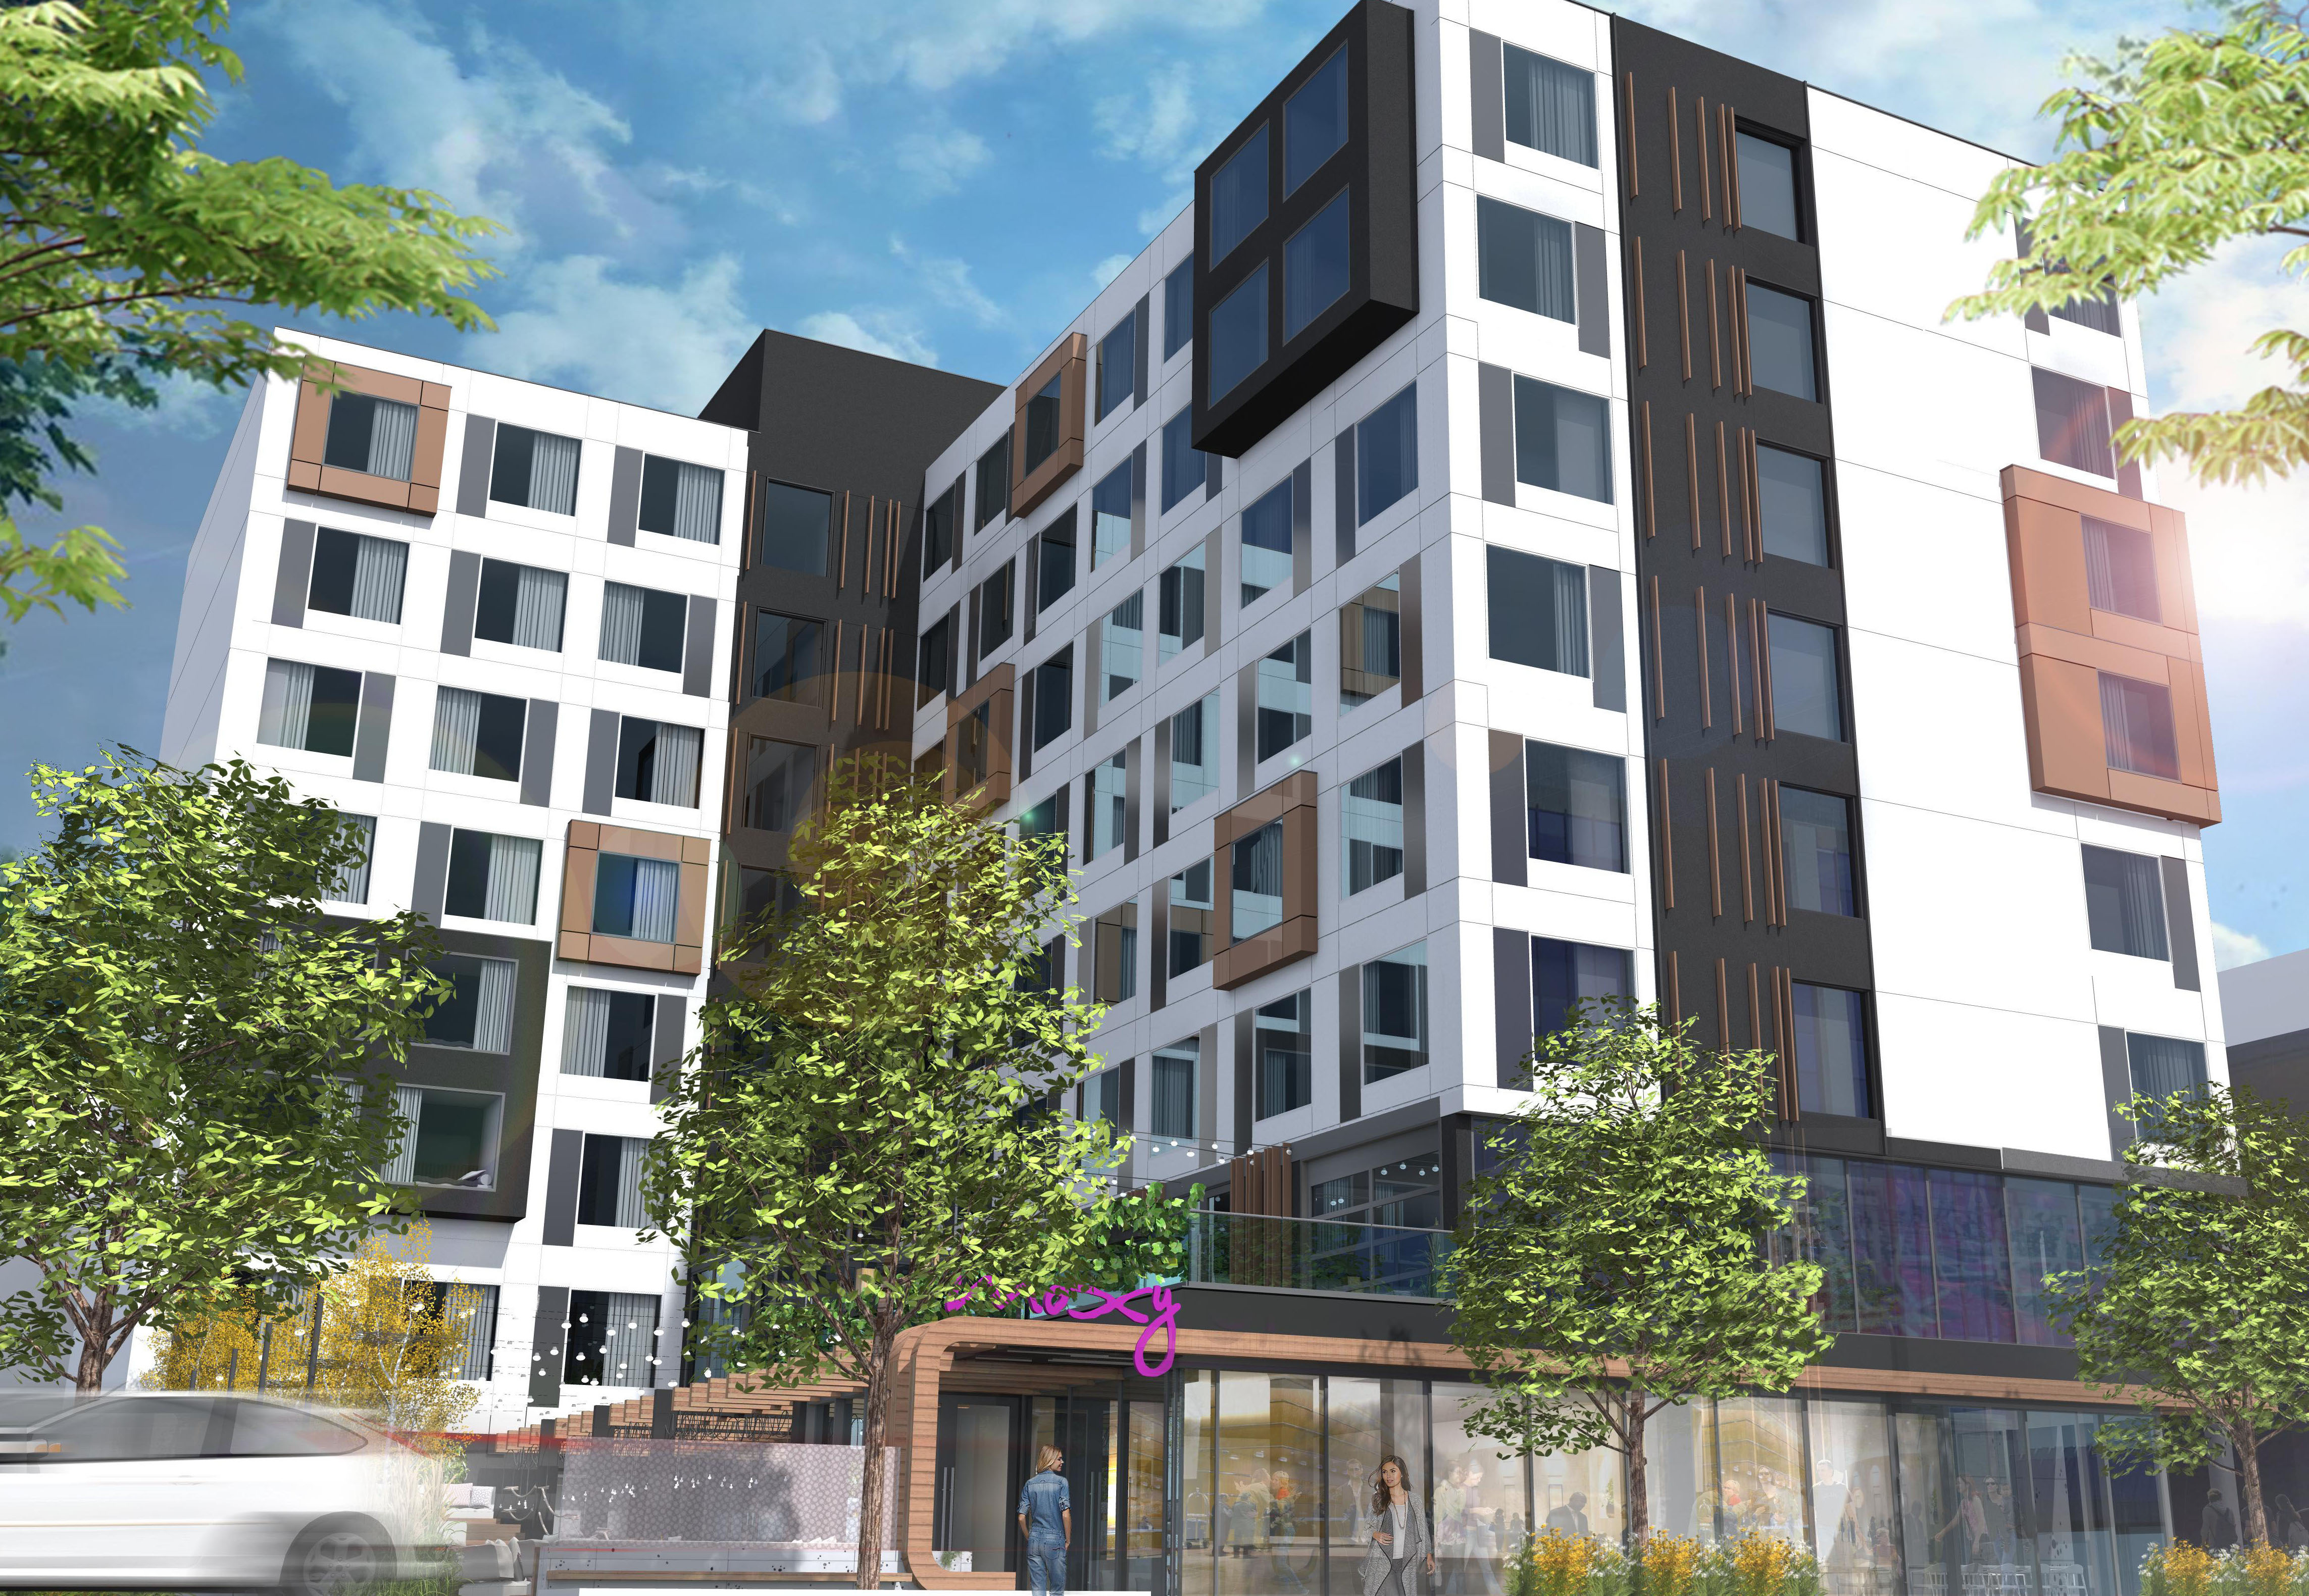 BMC Investments Announces Marriott Moxy Hotel in Cherry Creek